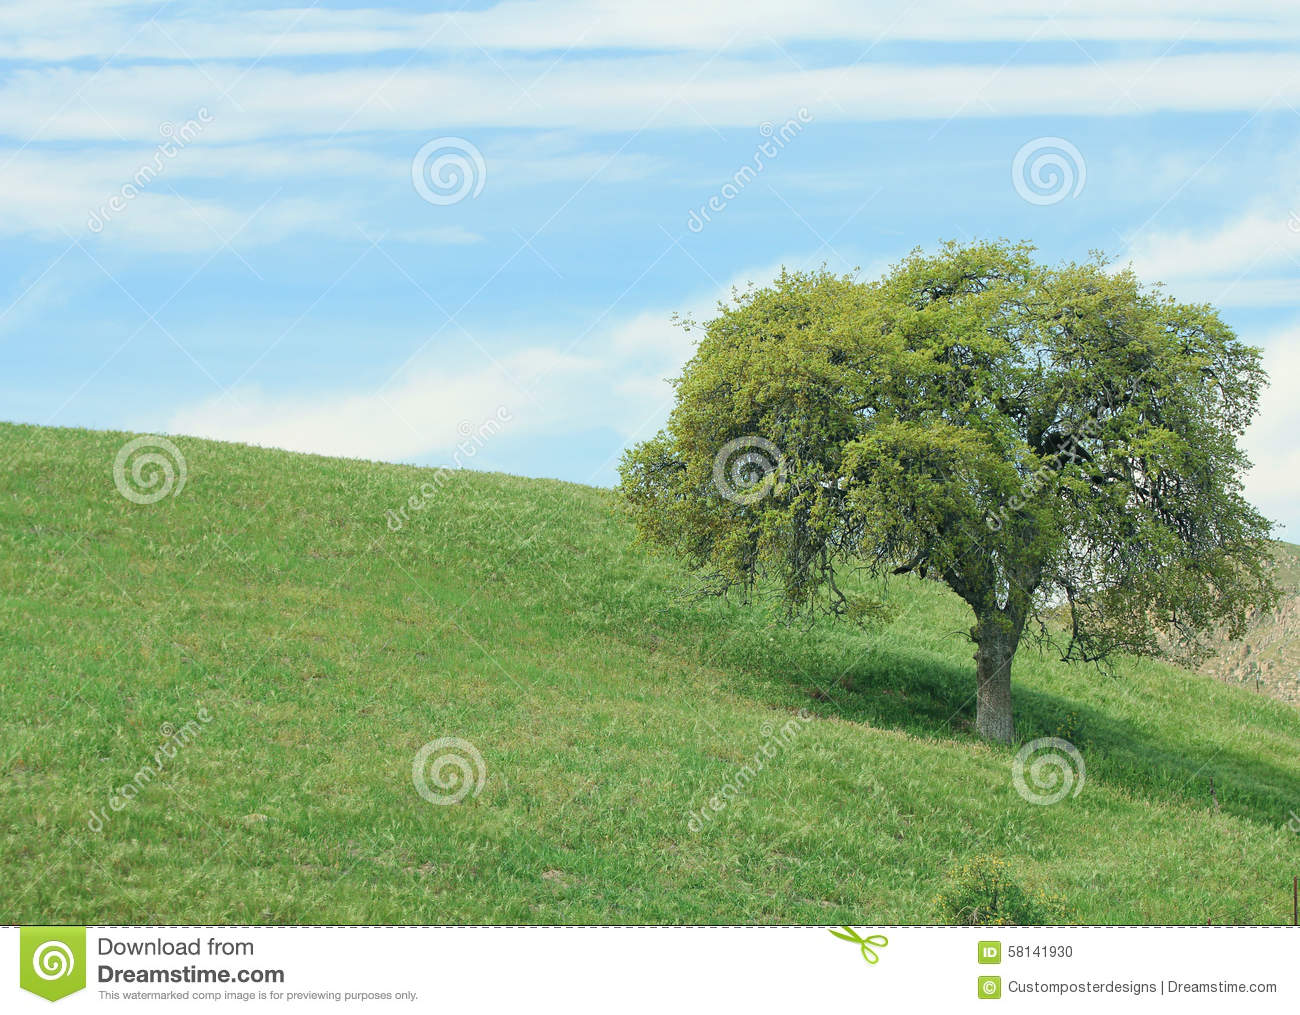 An outdoor lanscape of rolling green grass, an oaktree, and a blue sky with cloude.